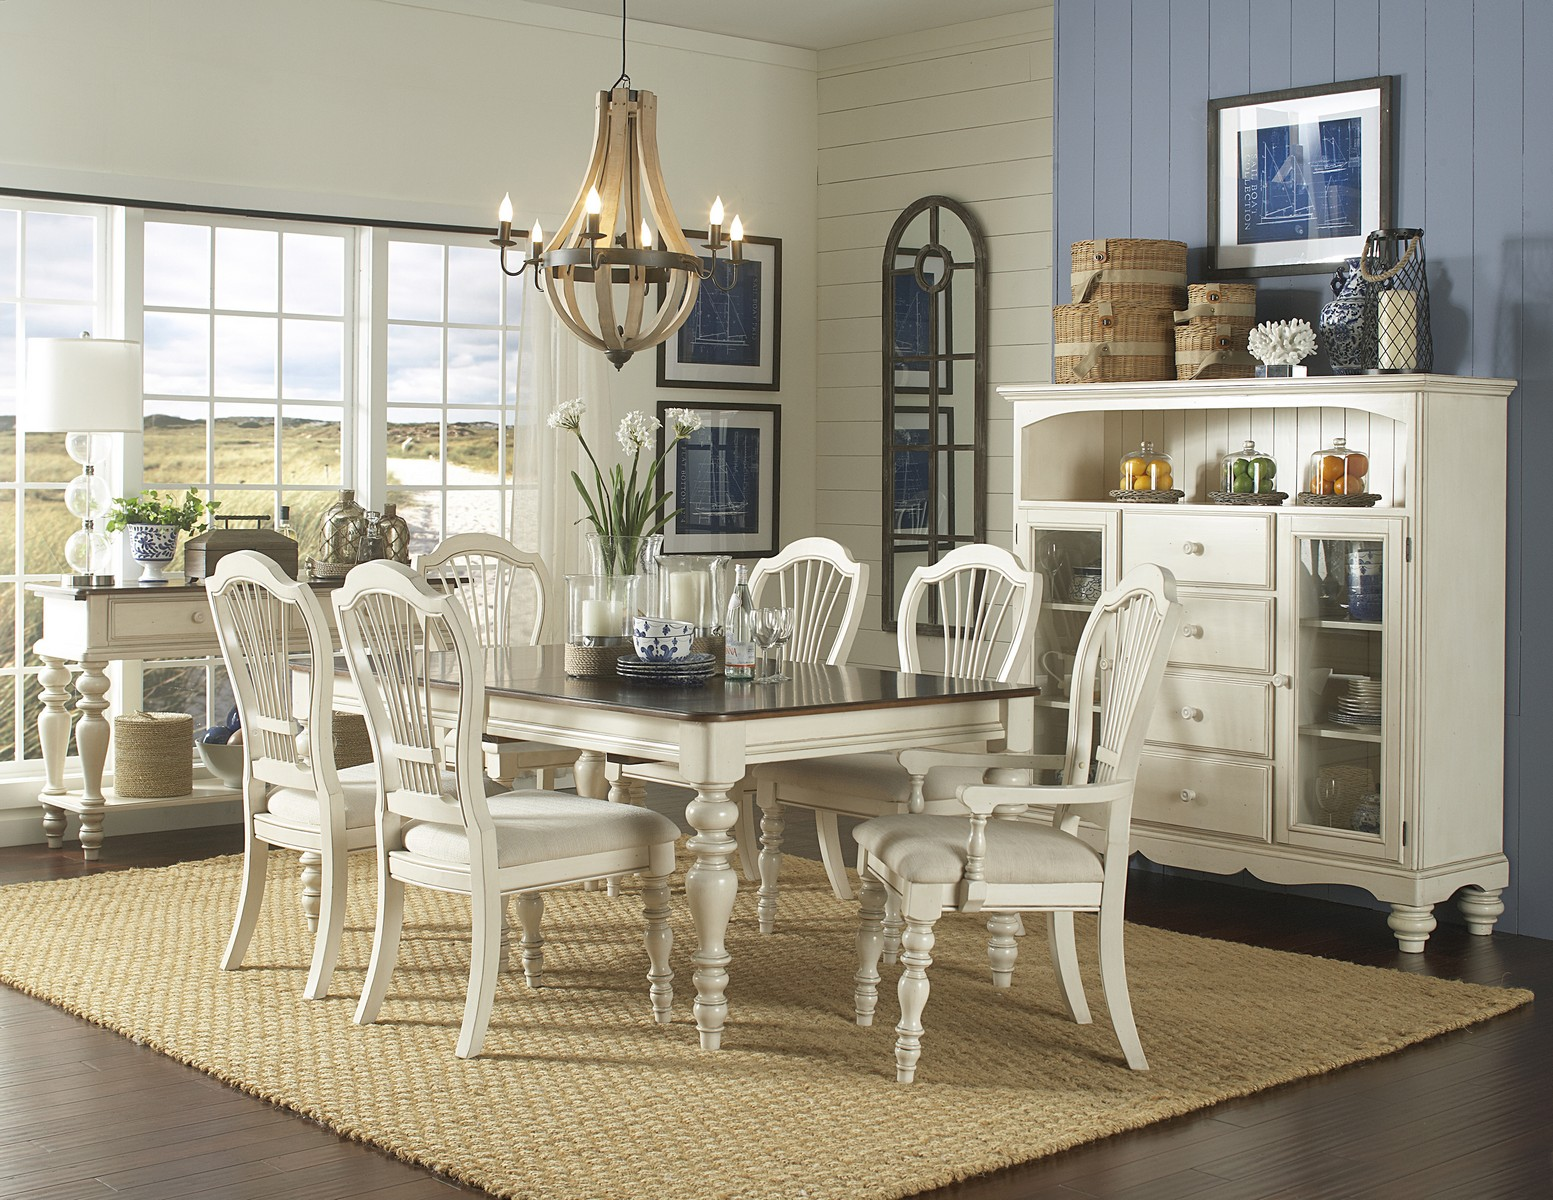 Incroyable Hillsdale Pine Island 7 PC Dining Set With Wheat Back Chairs   Old White